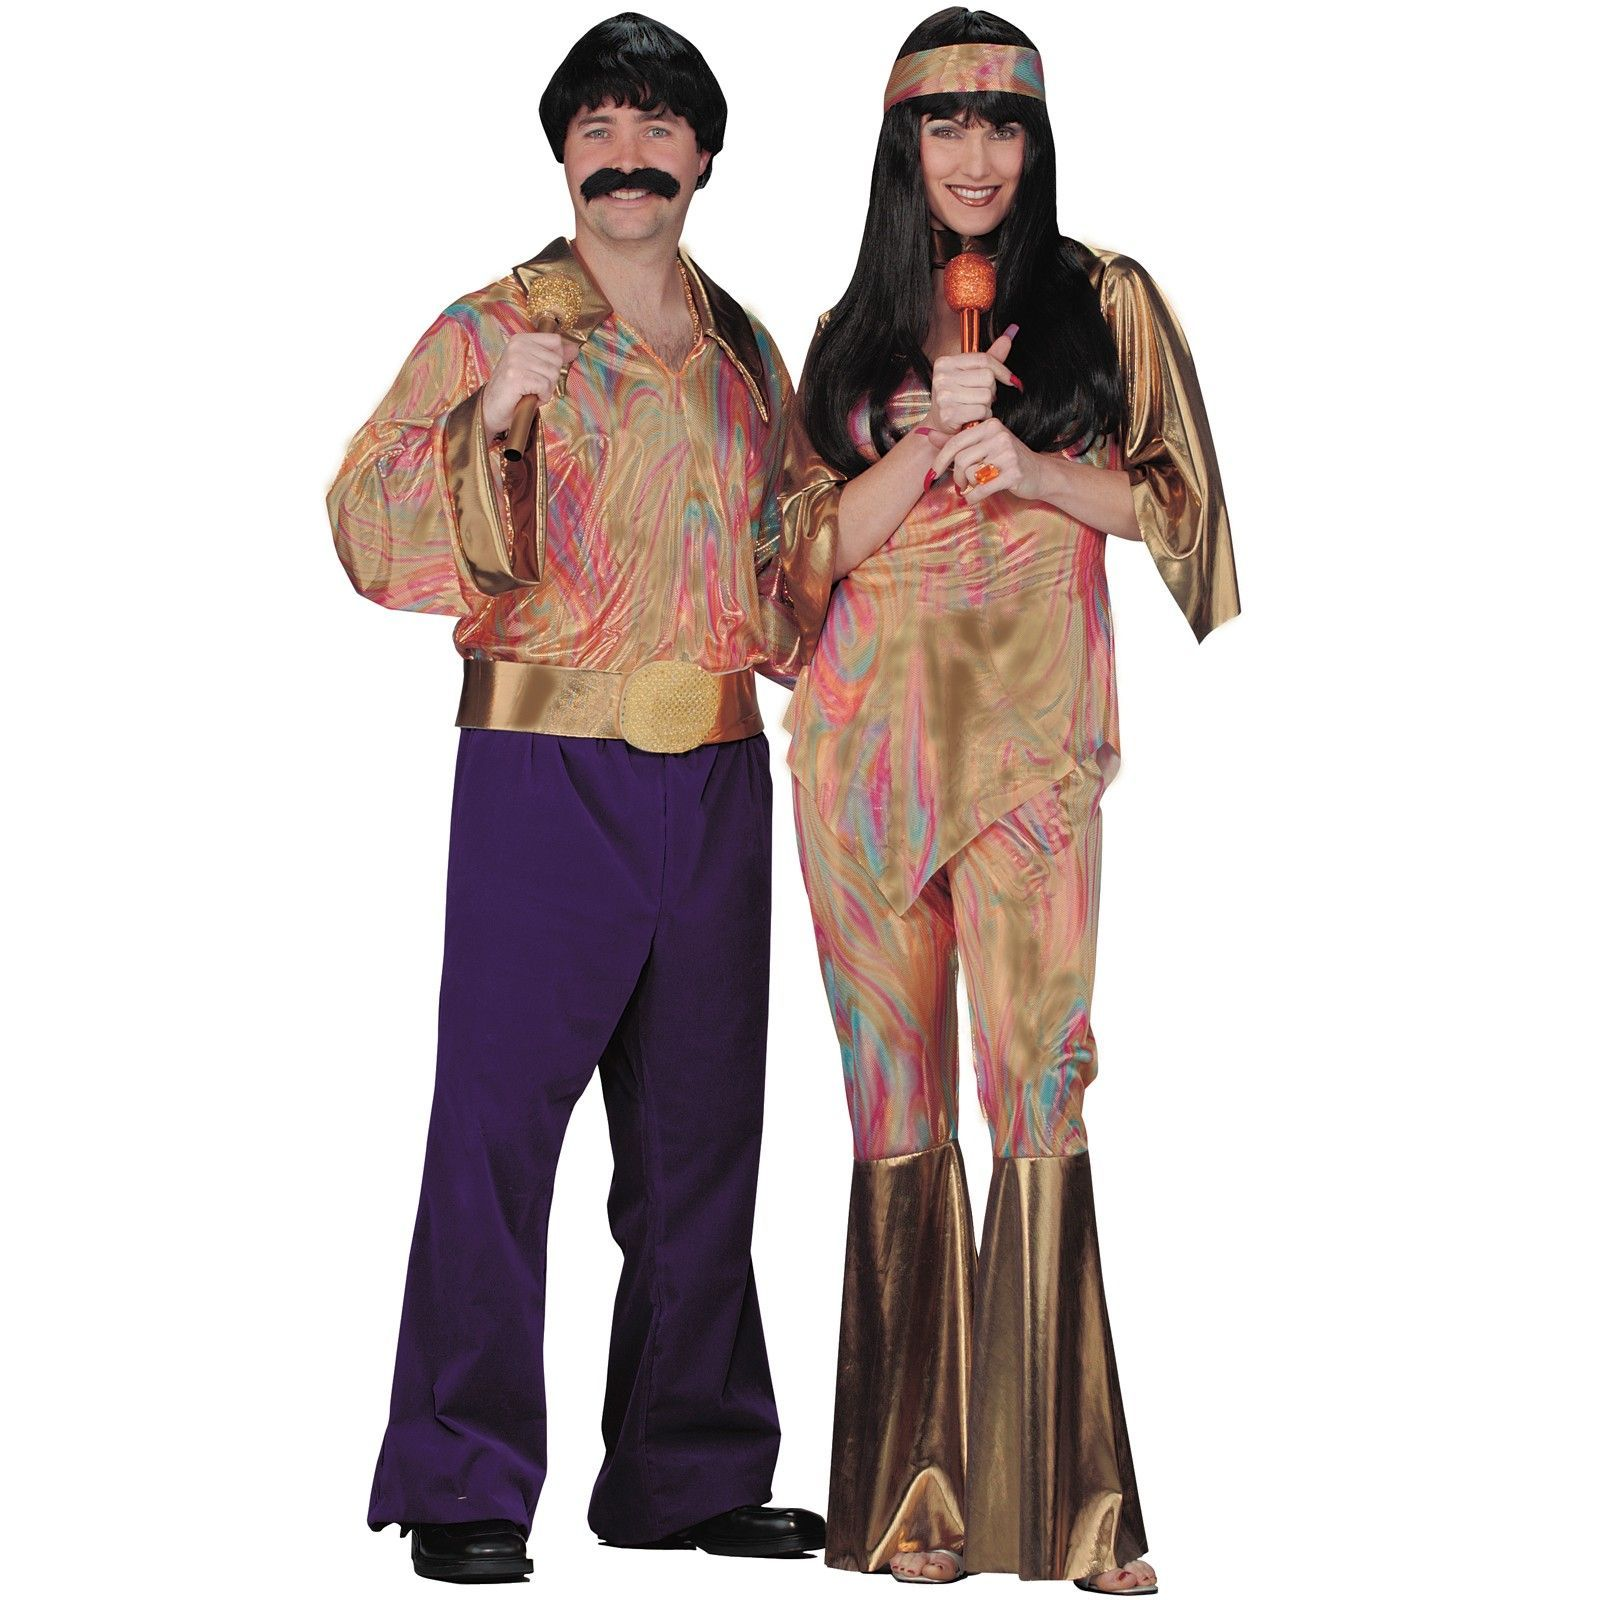 Sonny And Cher Costumes Party City